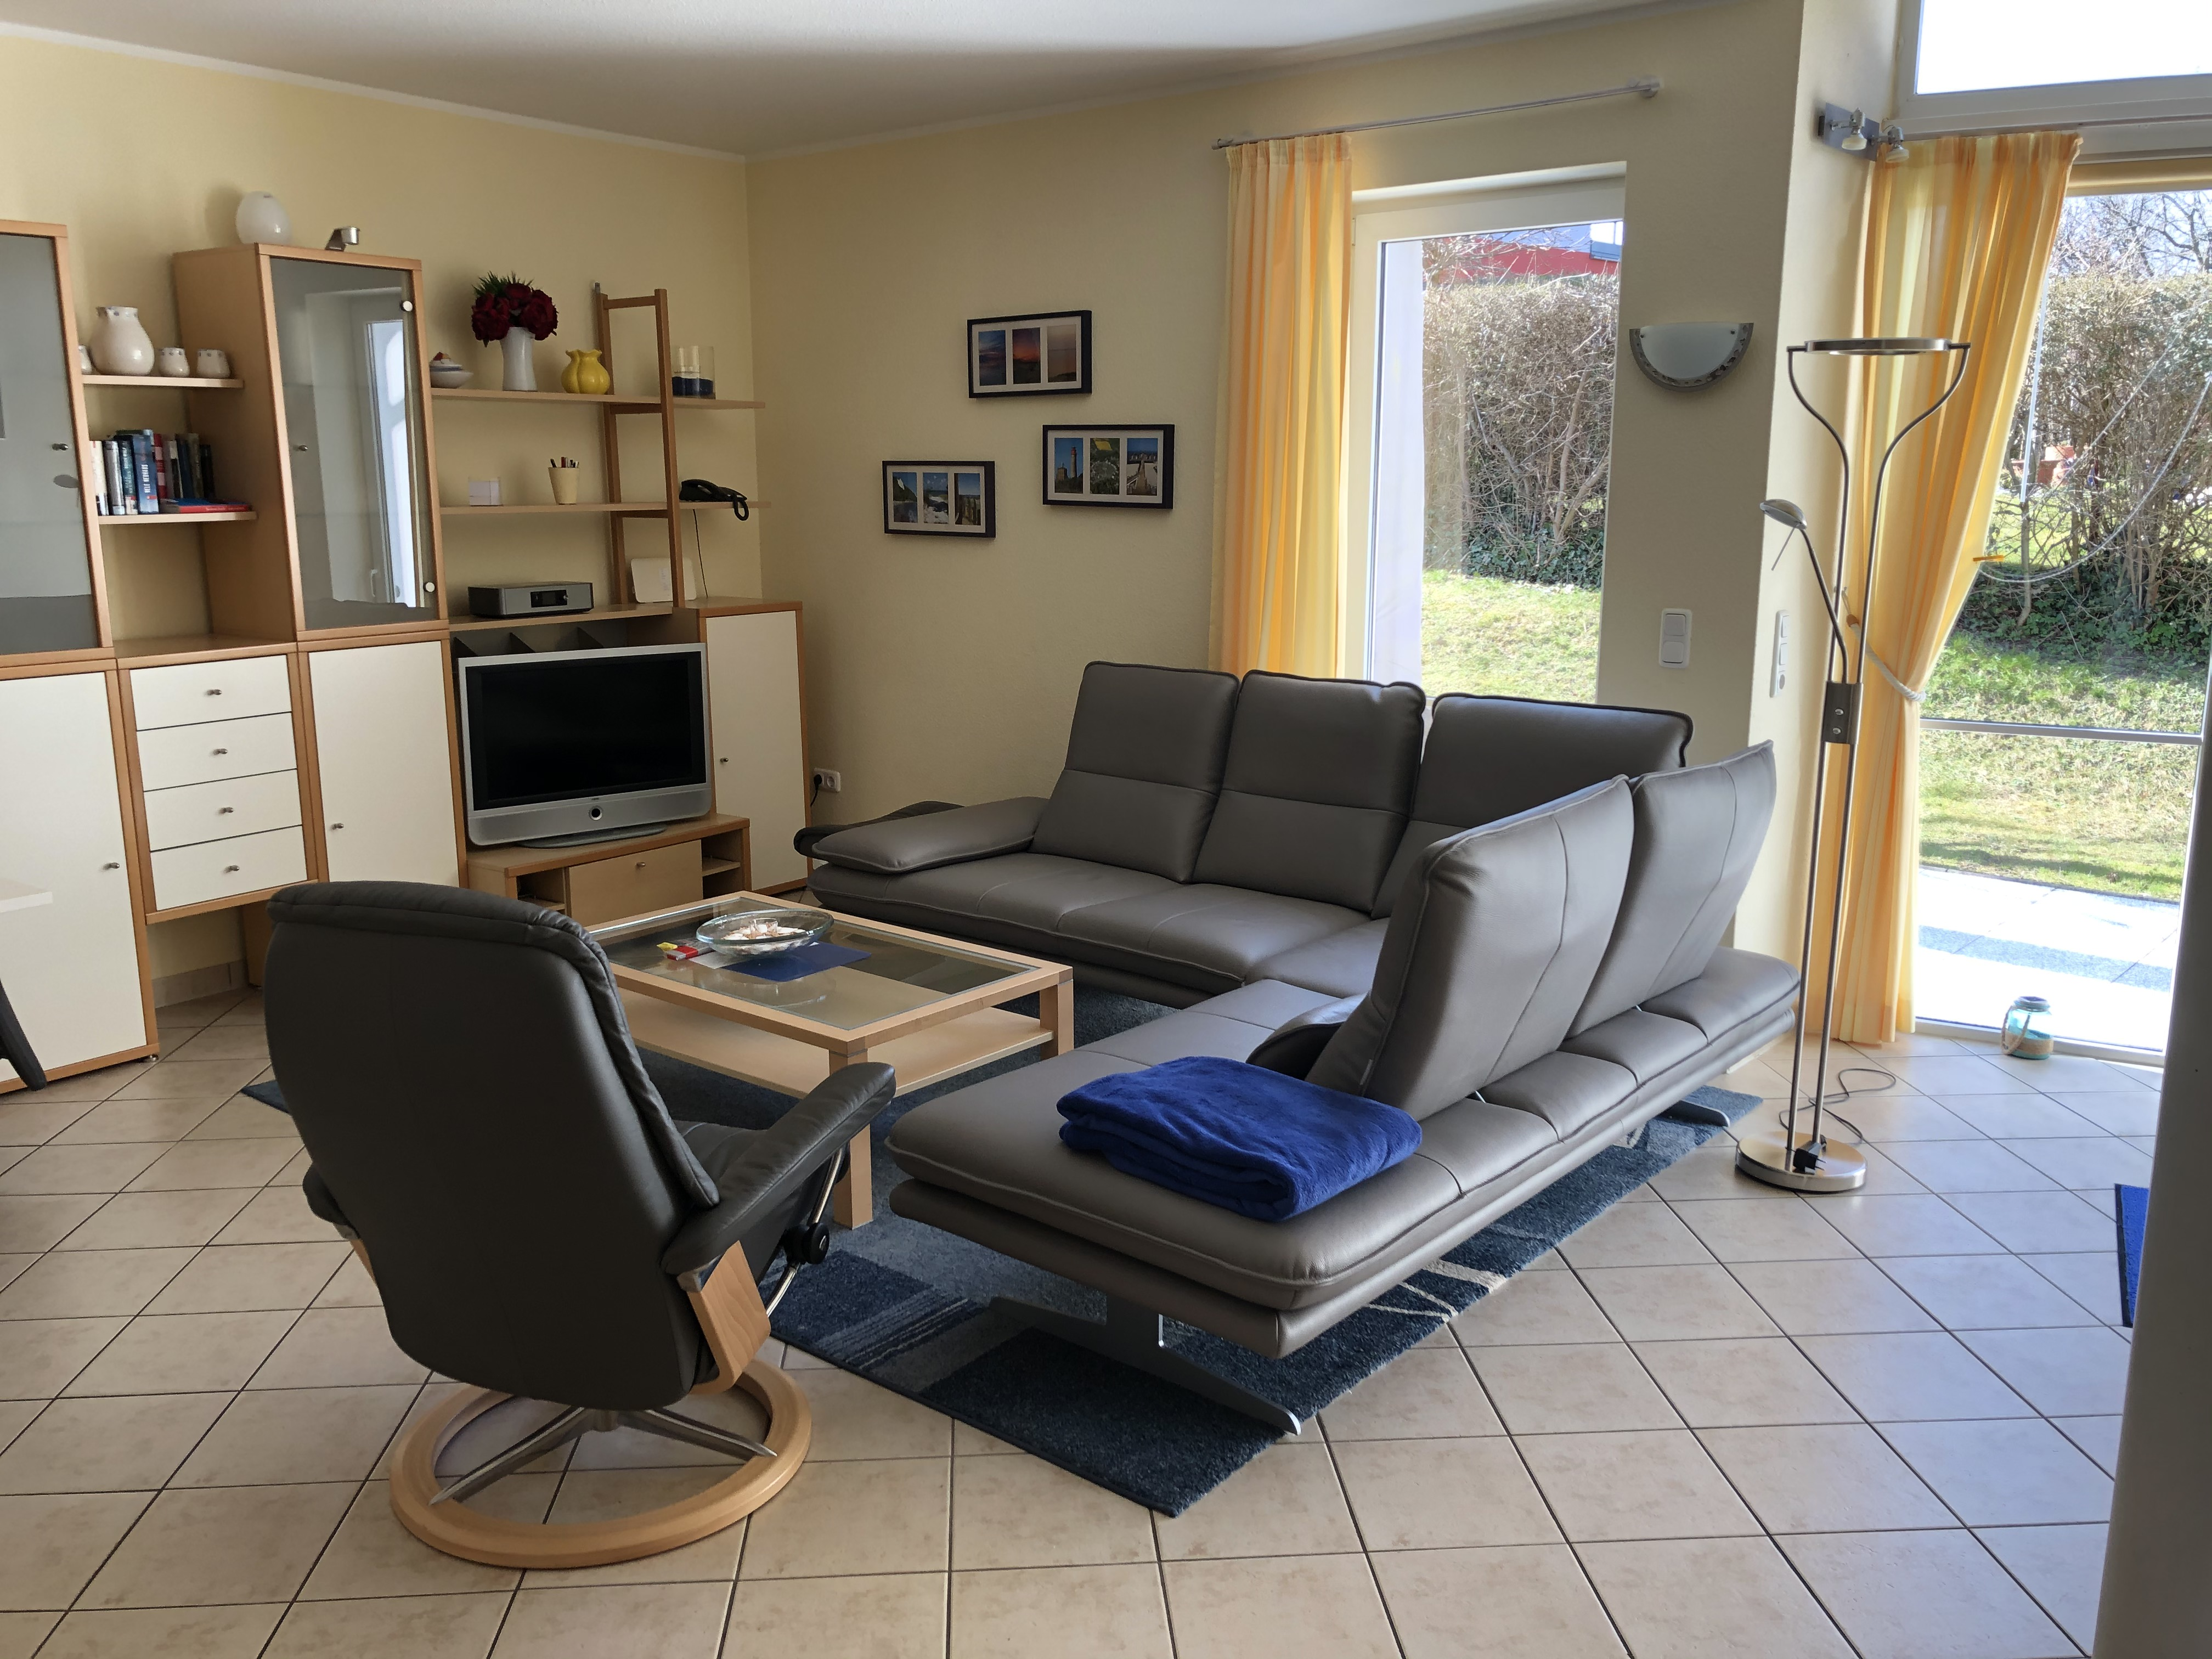 IMG_4505Couch1